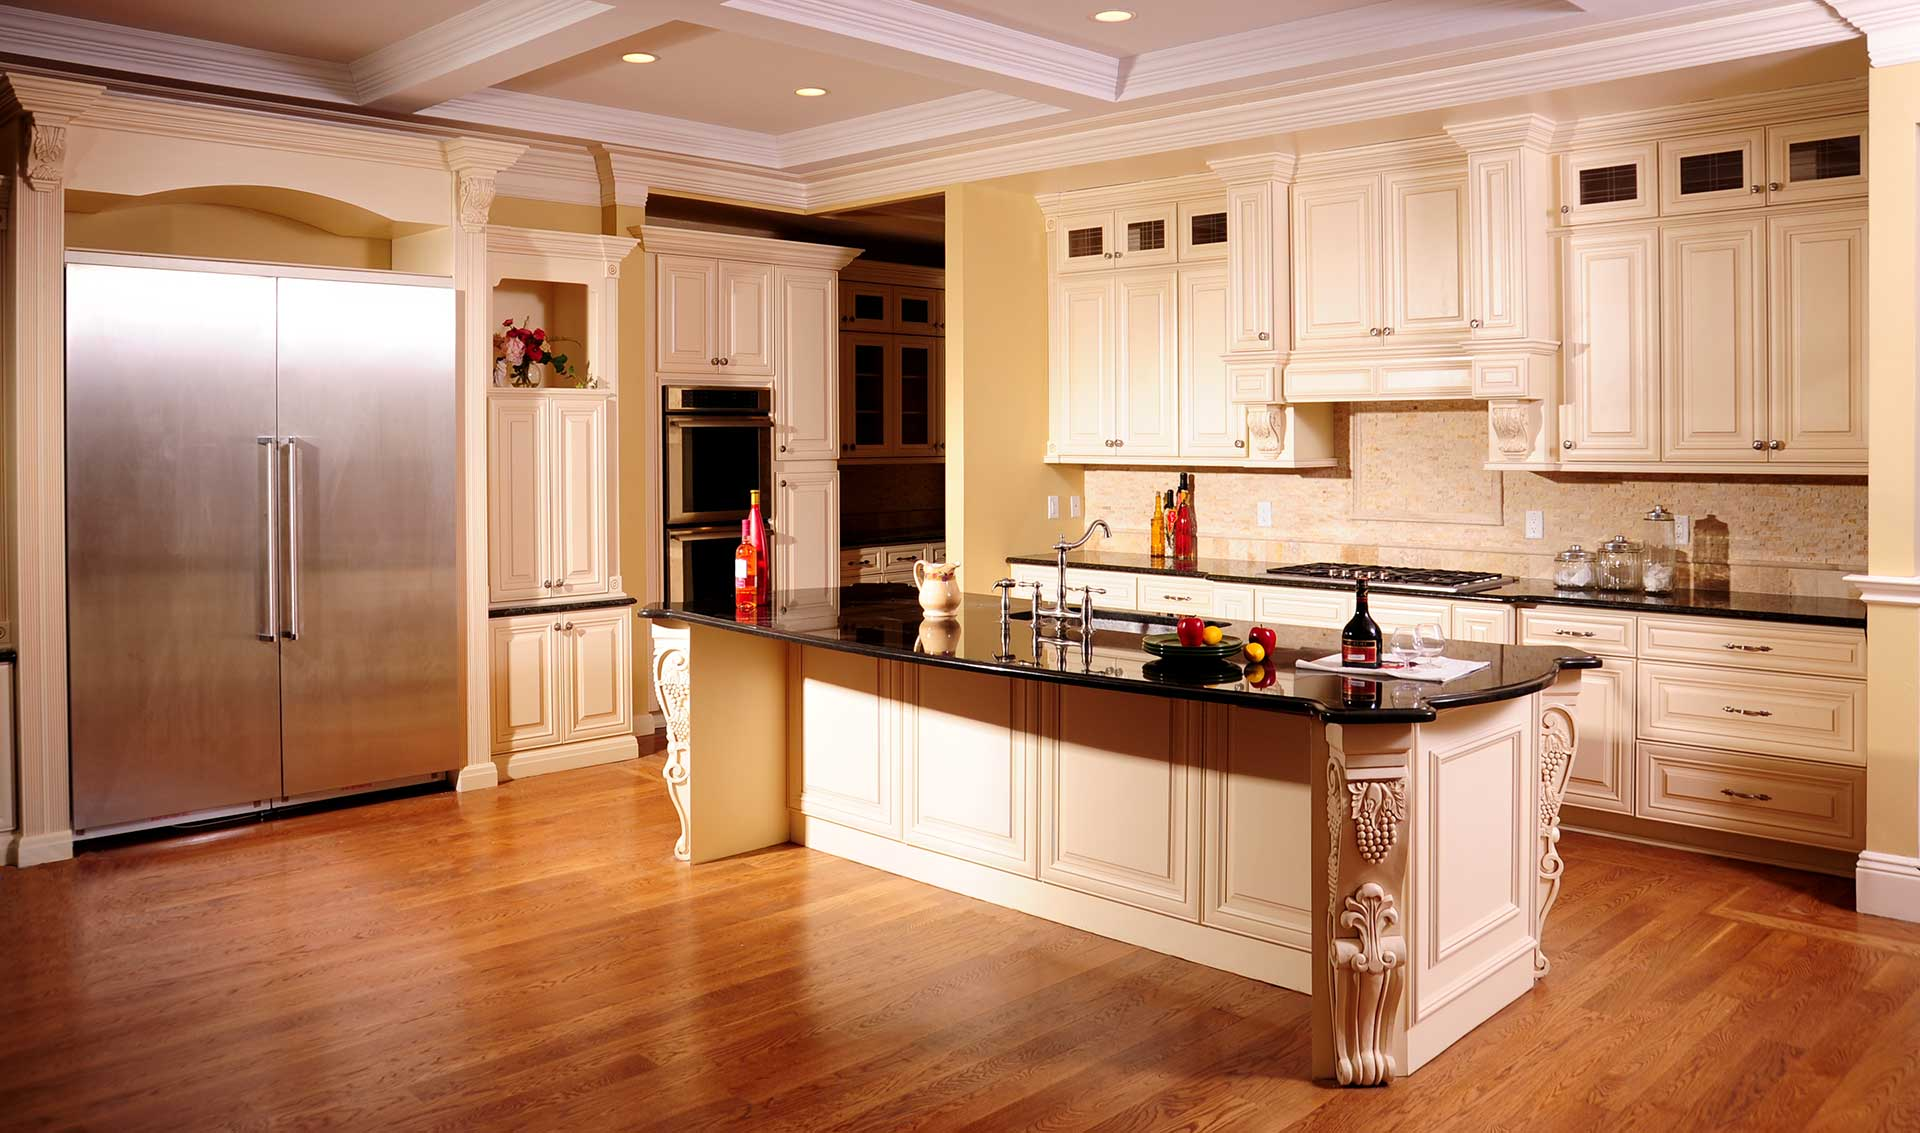 mkcabinet prefab kitchen cabinets Counter Top Cabinet Expert